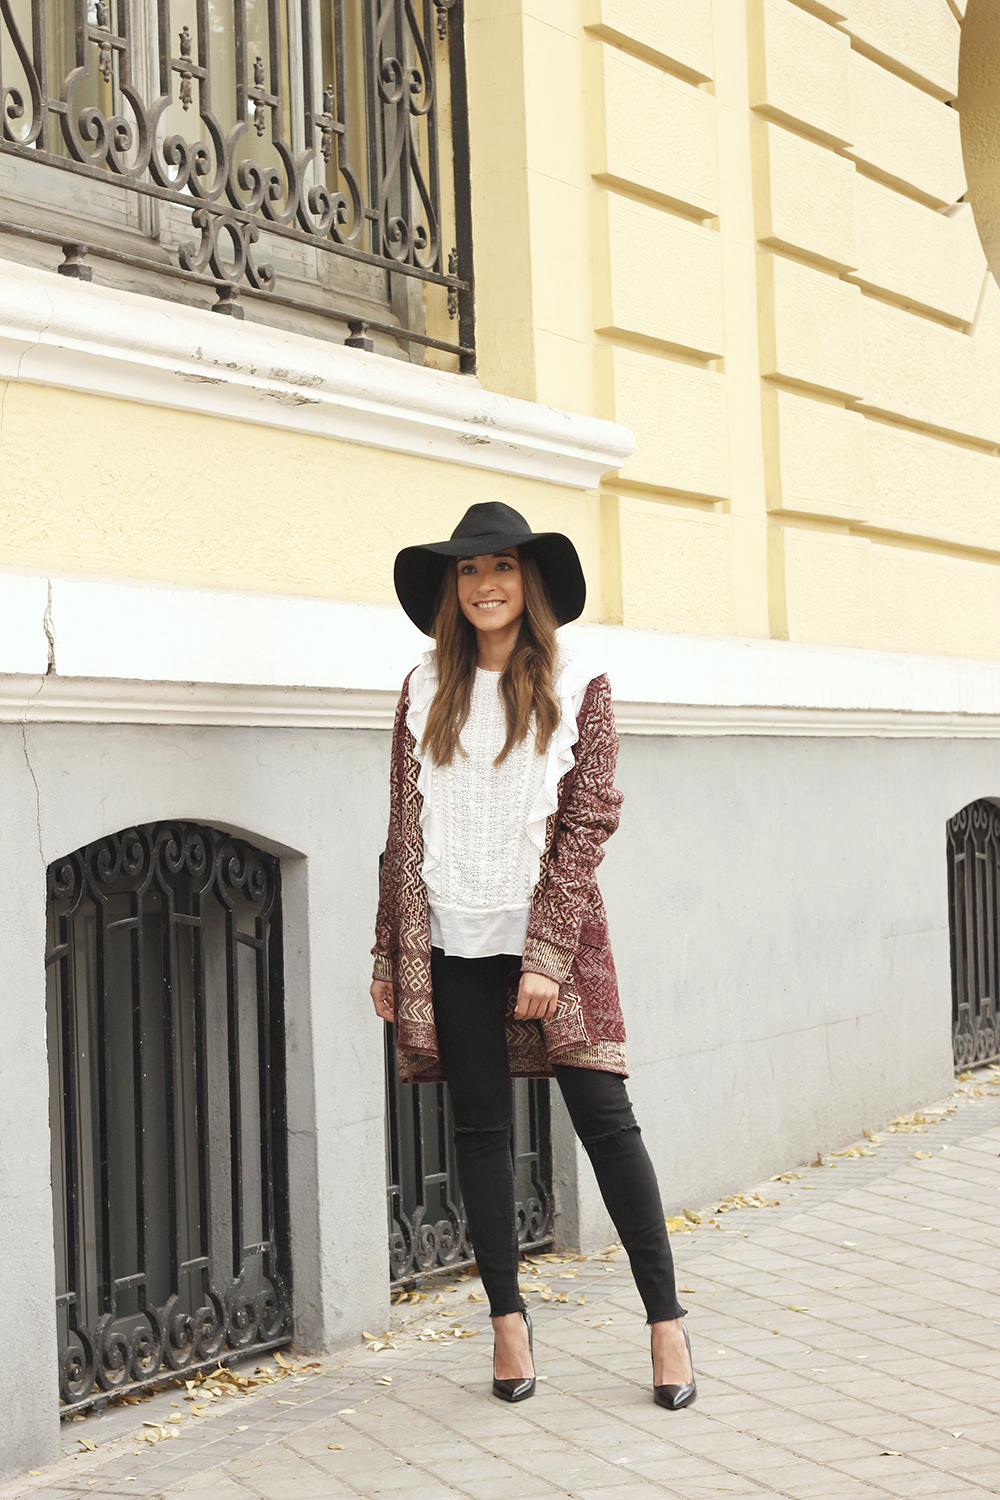 white blouse cardigan black jeans hat heels mdm fashion casual outfit01